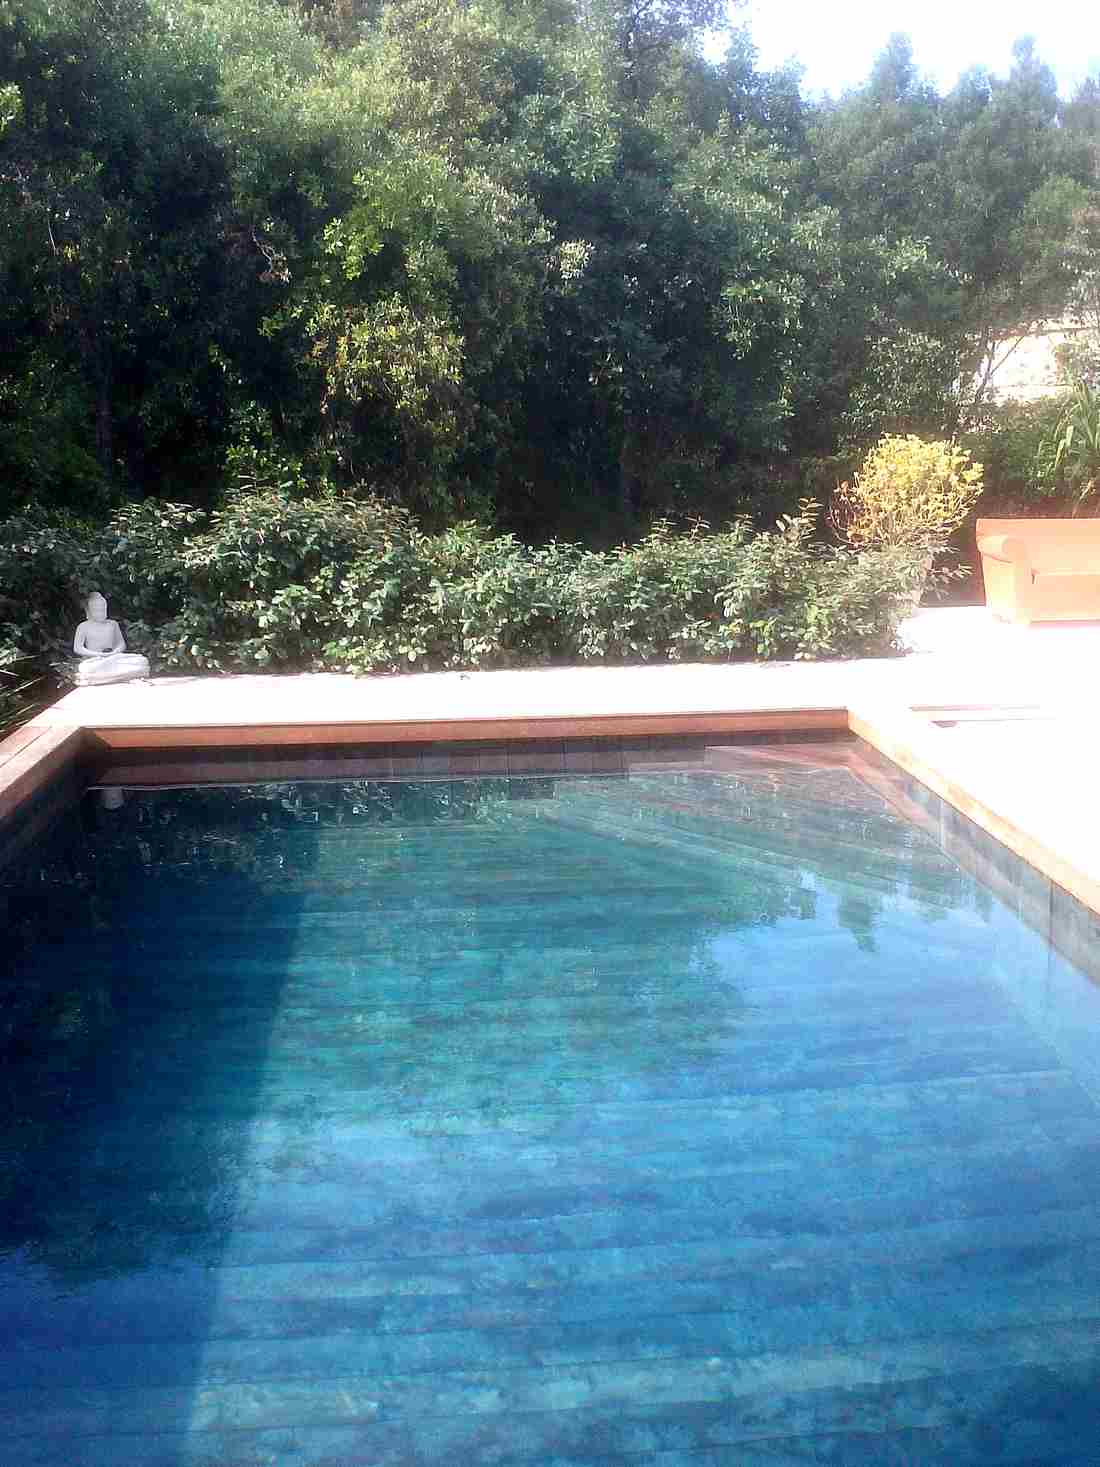 Holiday villa rental in Côte d'Azur France villa with large pool near ...